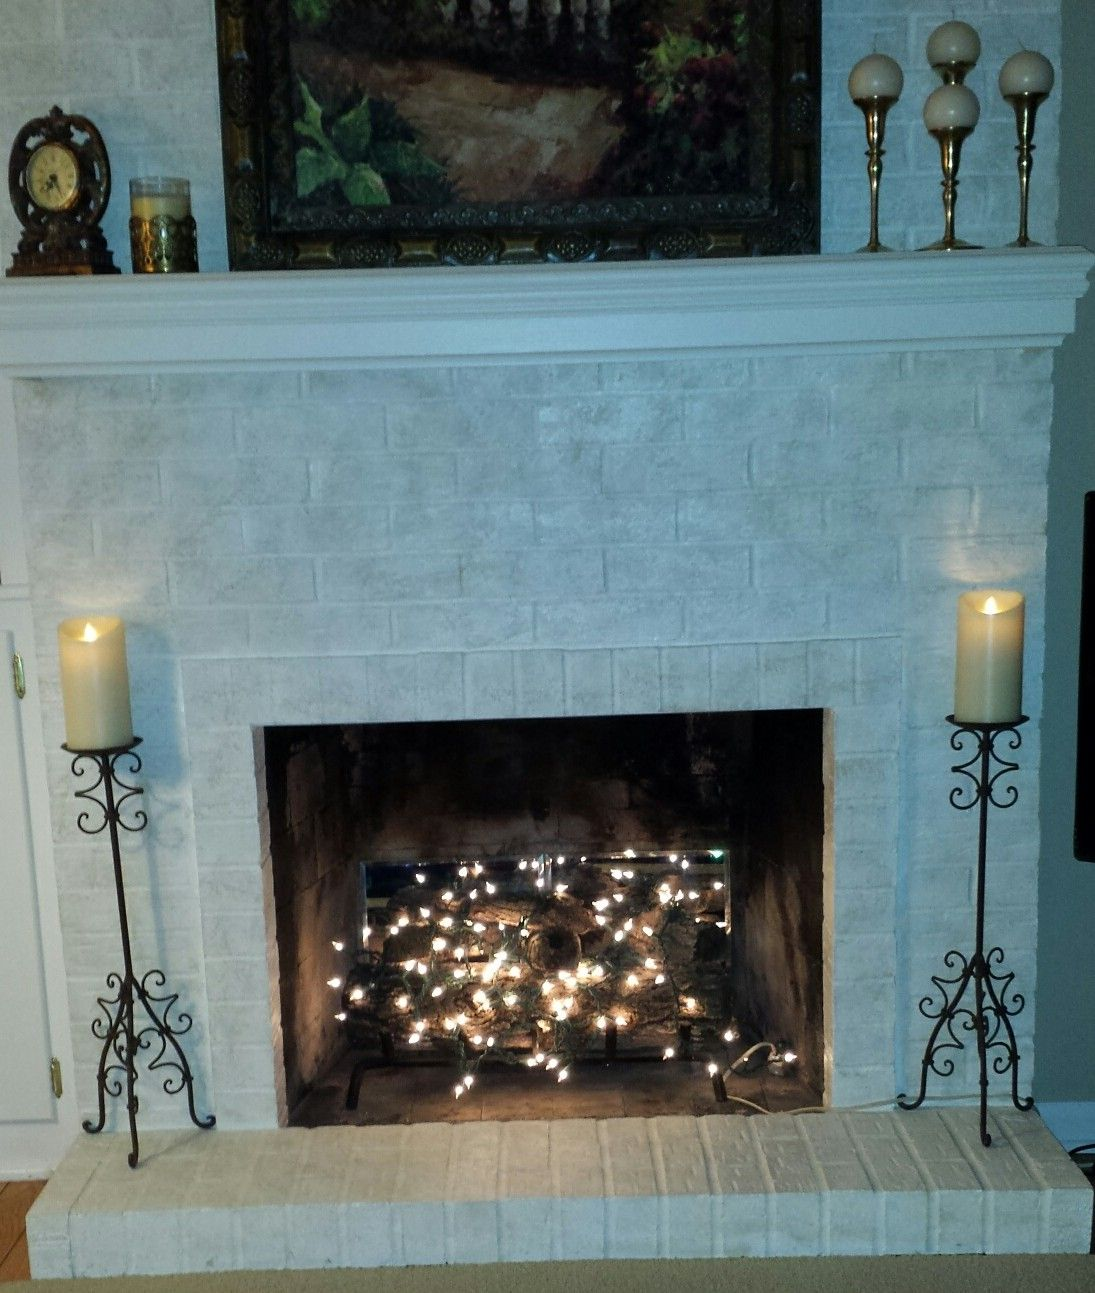 Twinkle Lights In Fireplace Fireplace Lighting Fake Fireplace Fake Fireplace Mantel